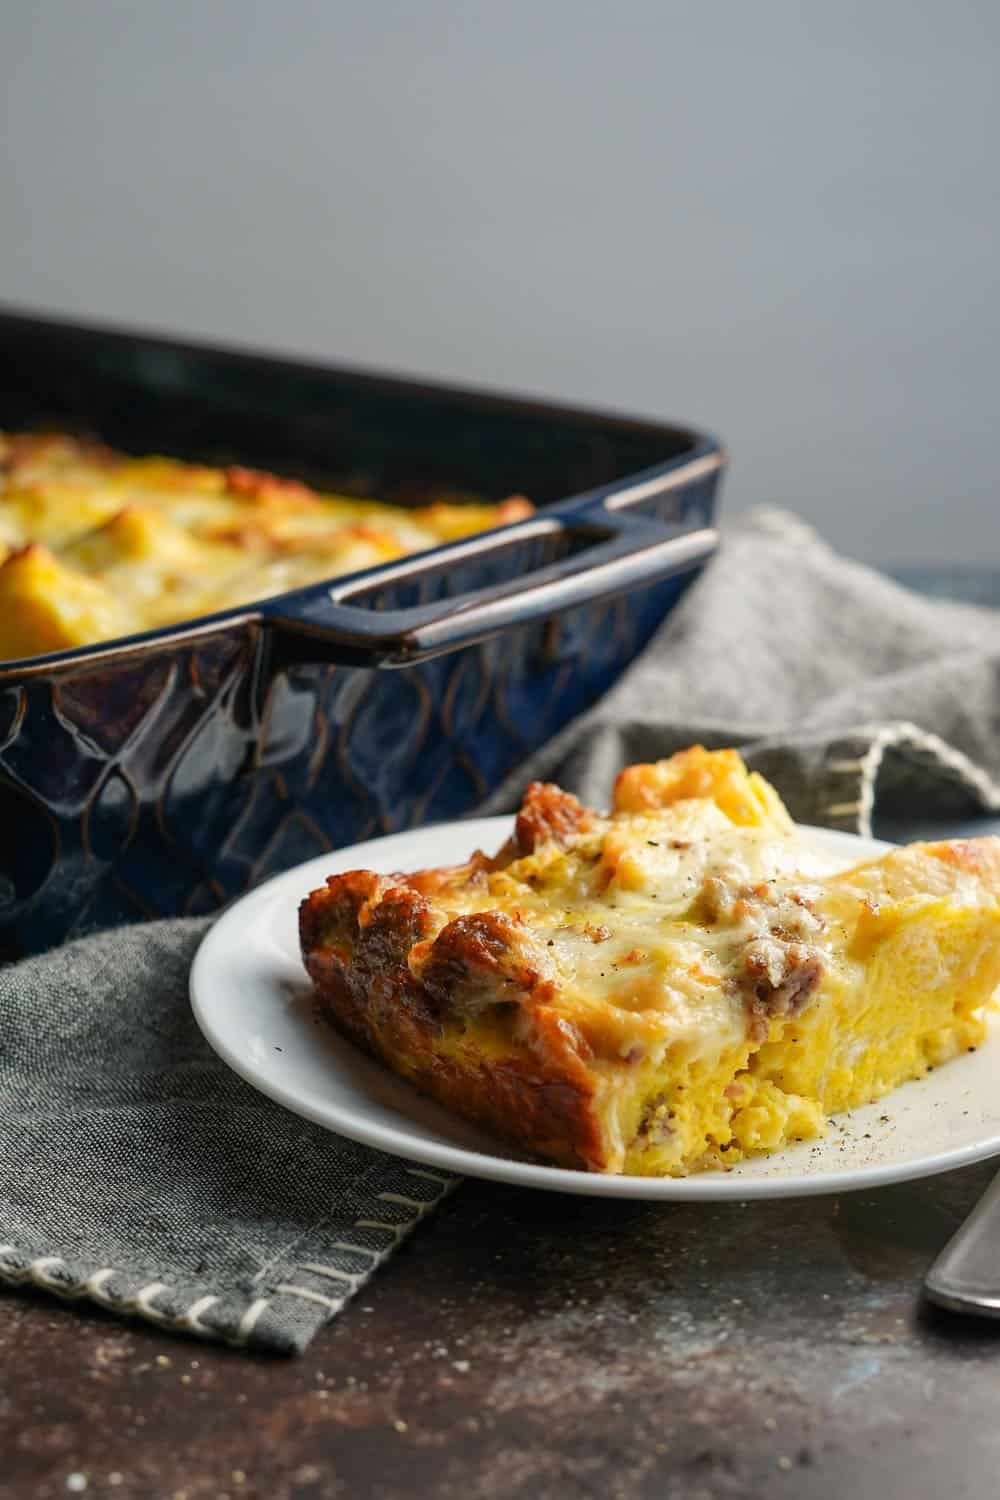 Italian Breakfast Casserole on a Plate